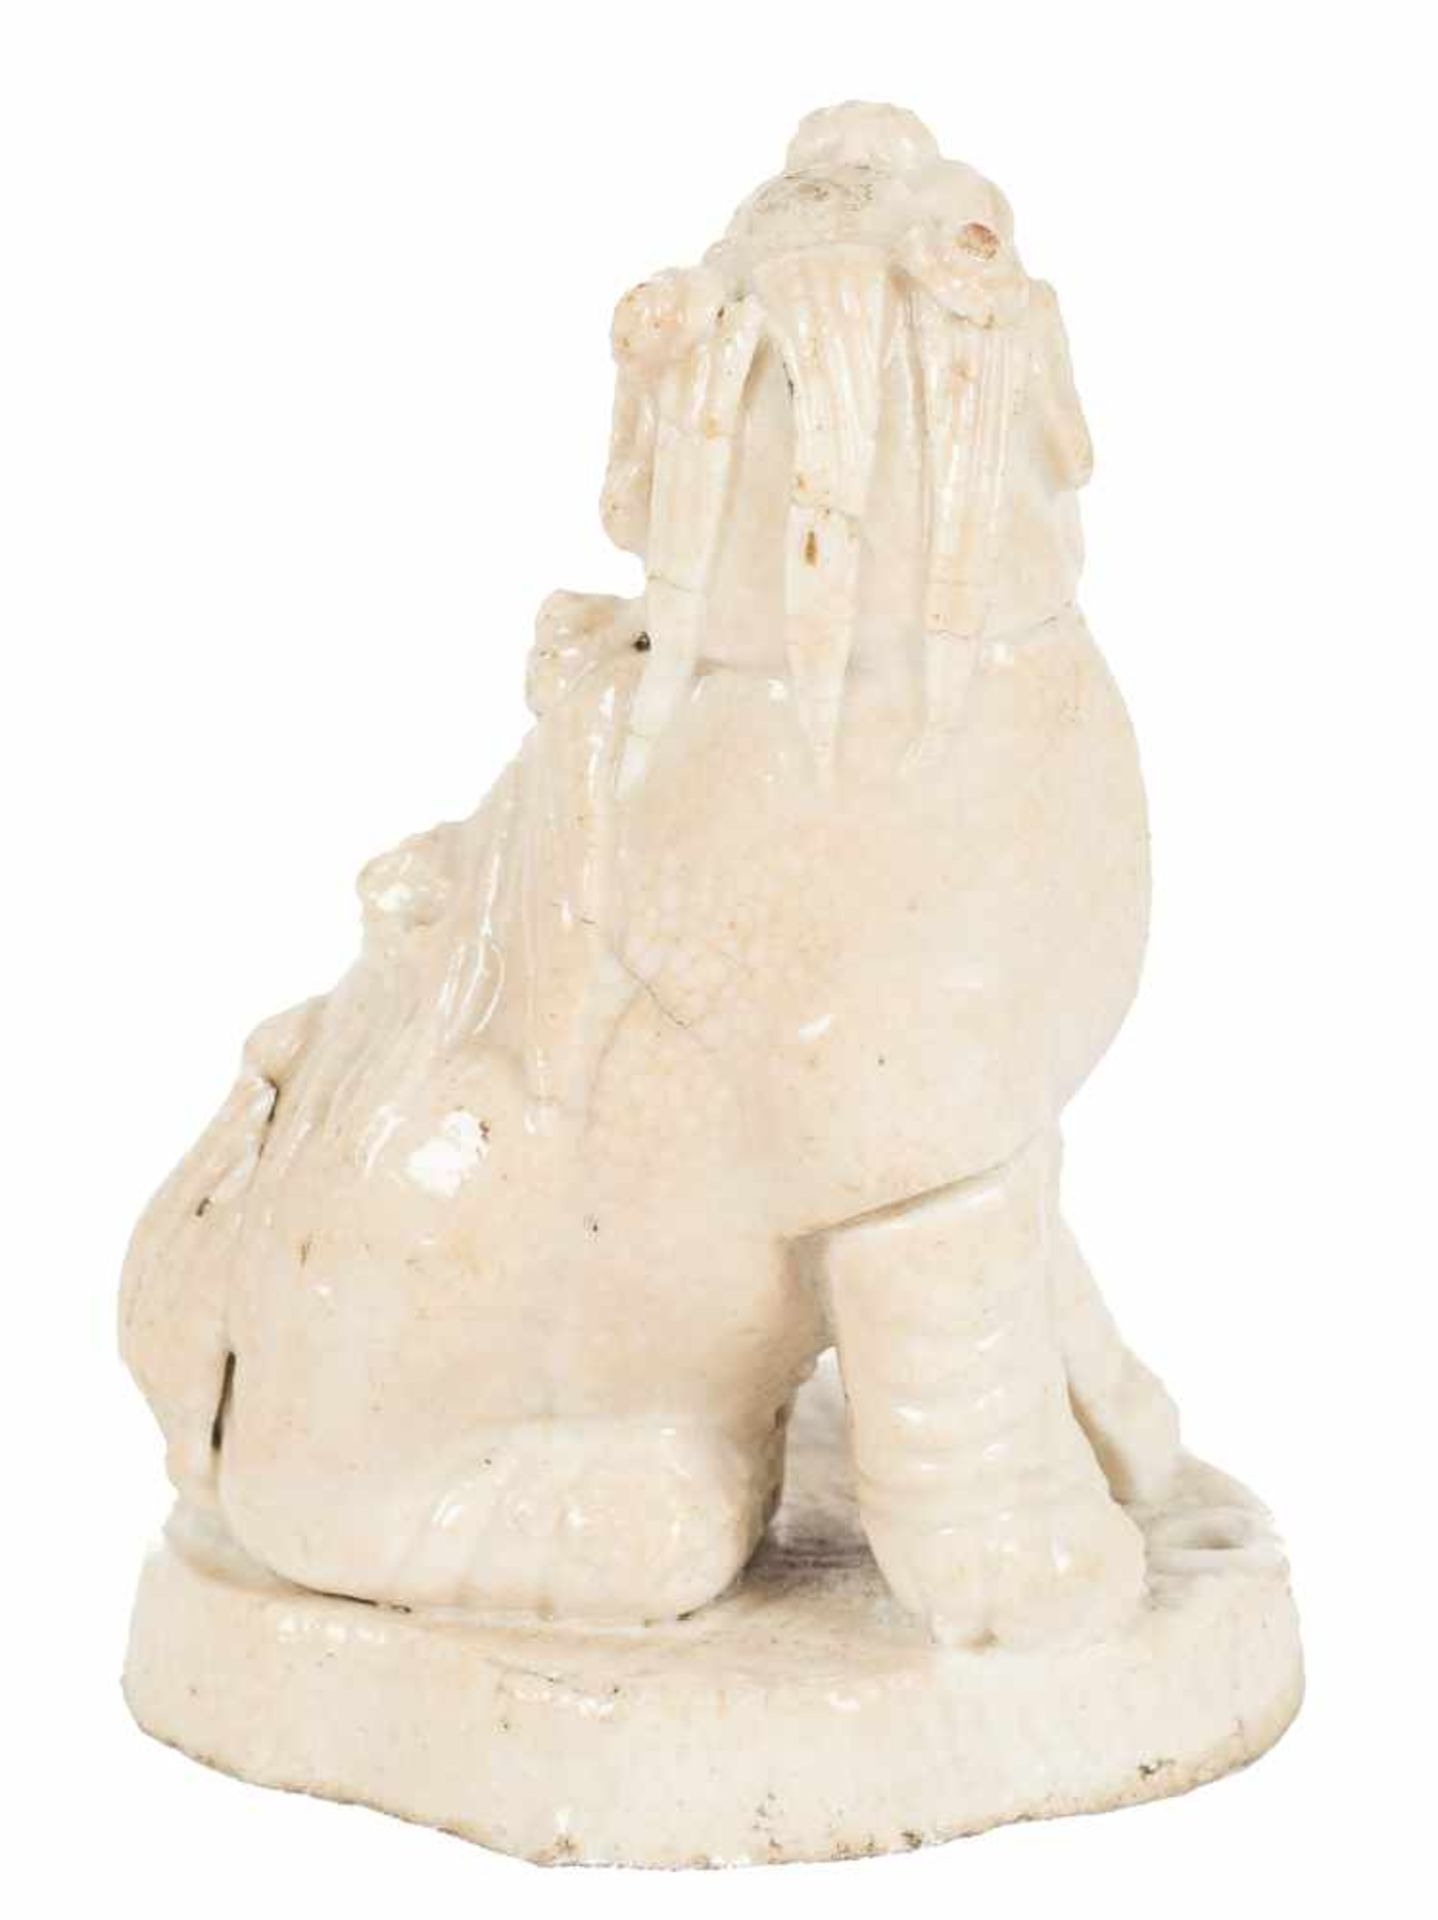 Los 50 - Kylin in white porcelain. China. Ming Period (1368-1644)5,5 x 4 x 3 cm.